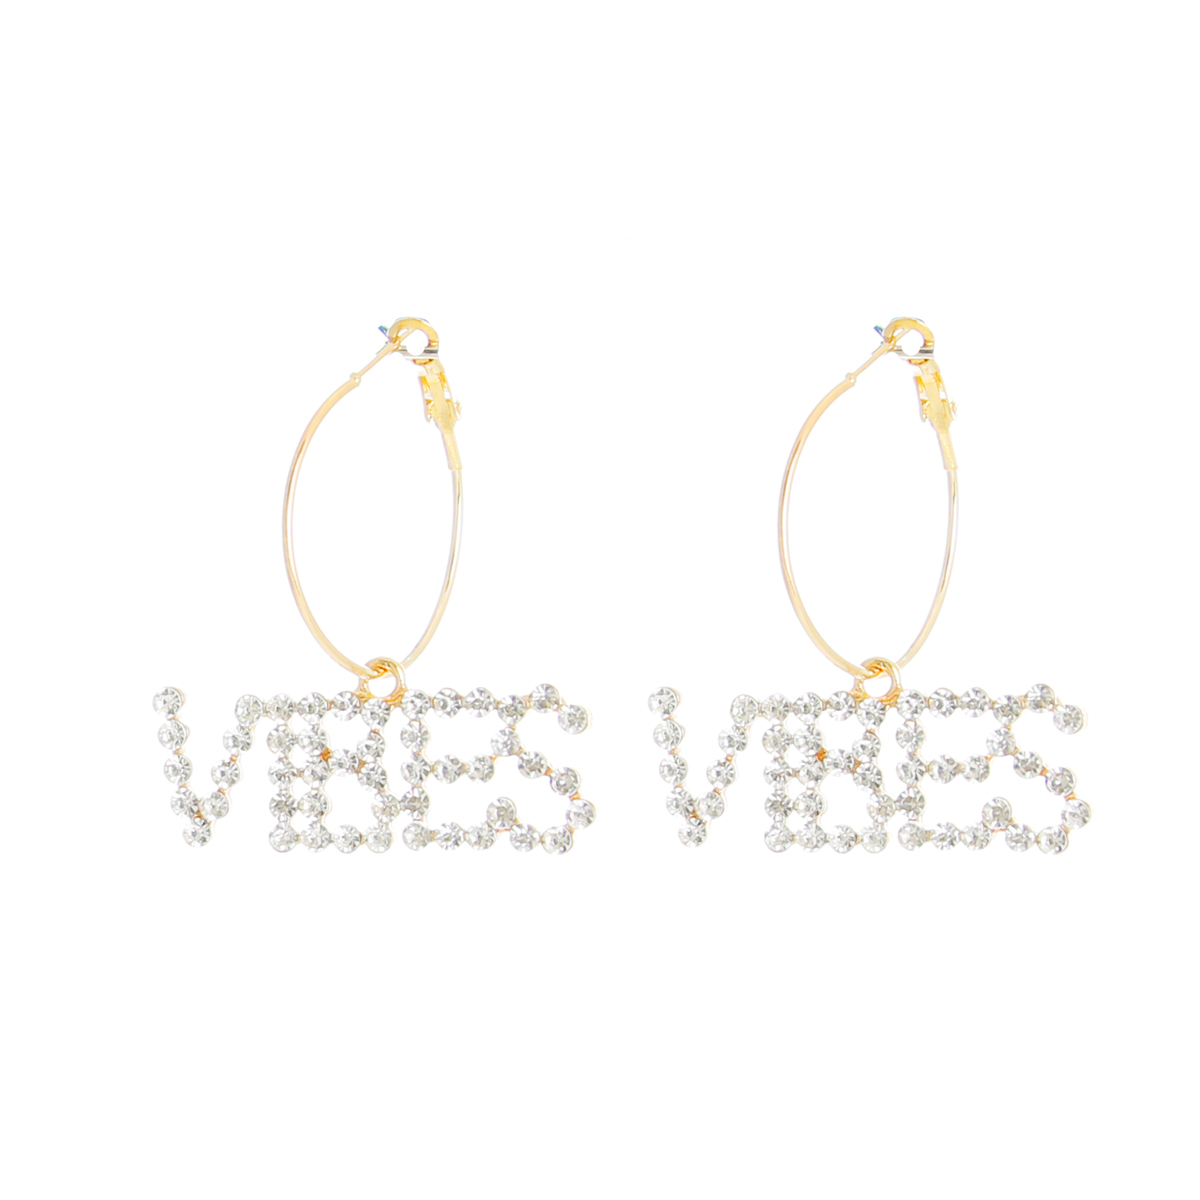 J2261_Vibes_word_Earrings_gold